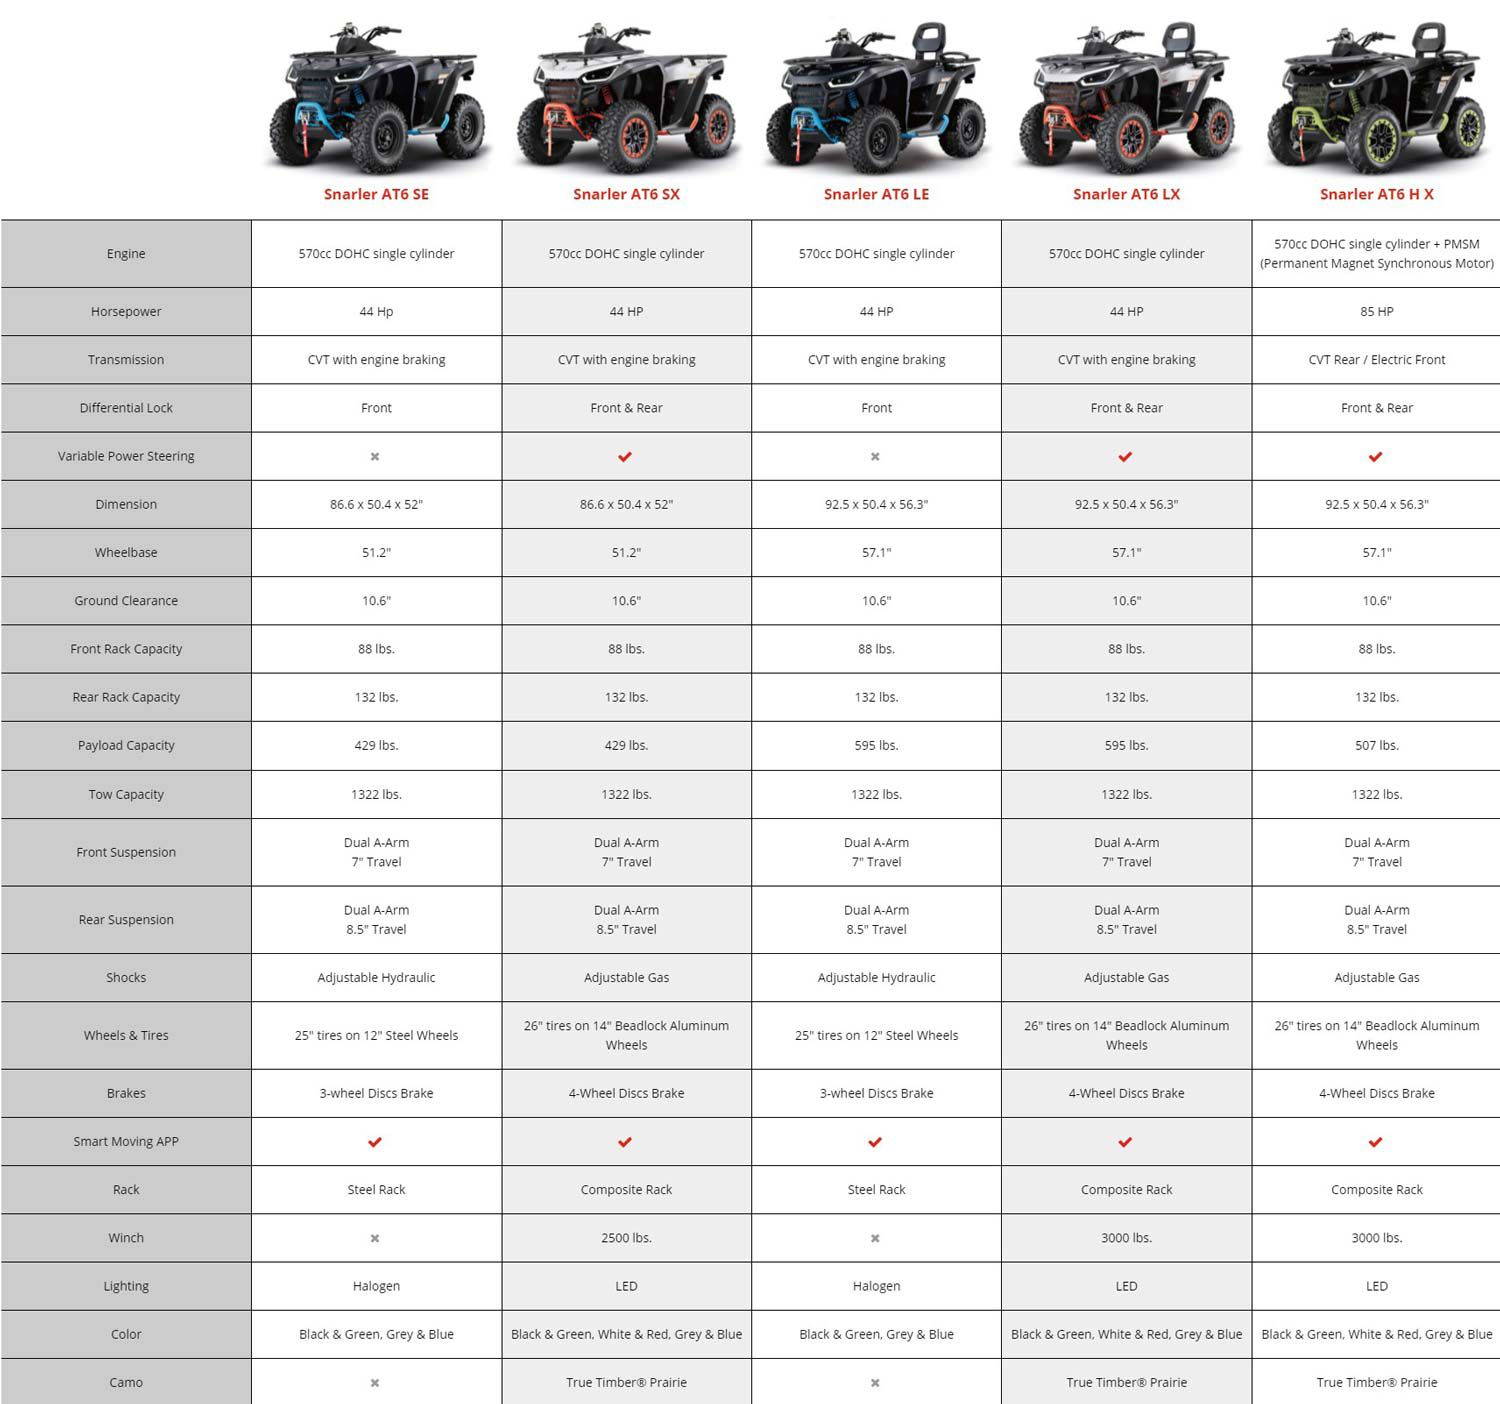 The latest specifications for new Segway Snarler models coming to US dealerships.